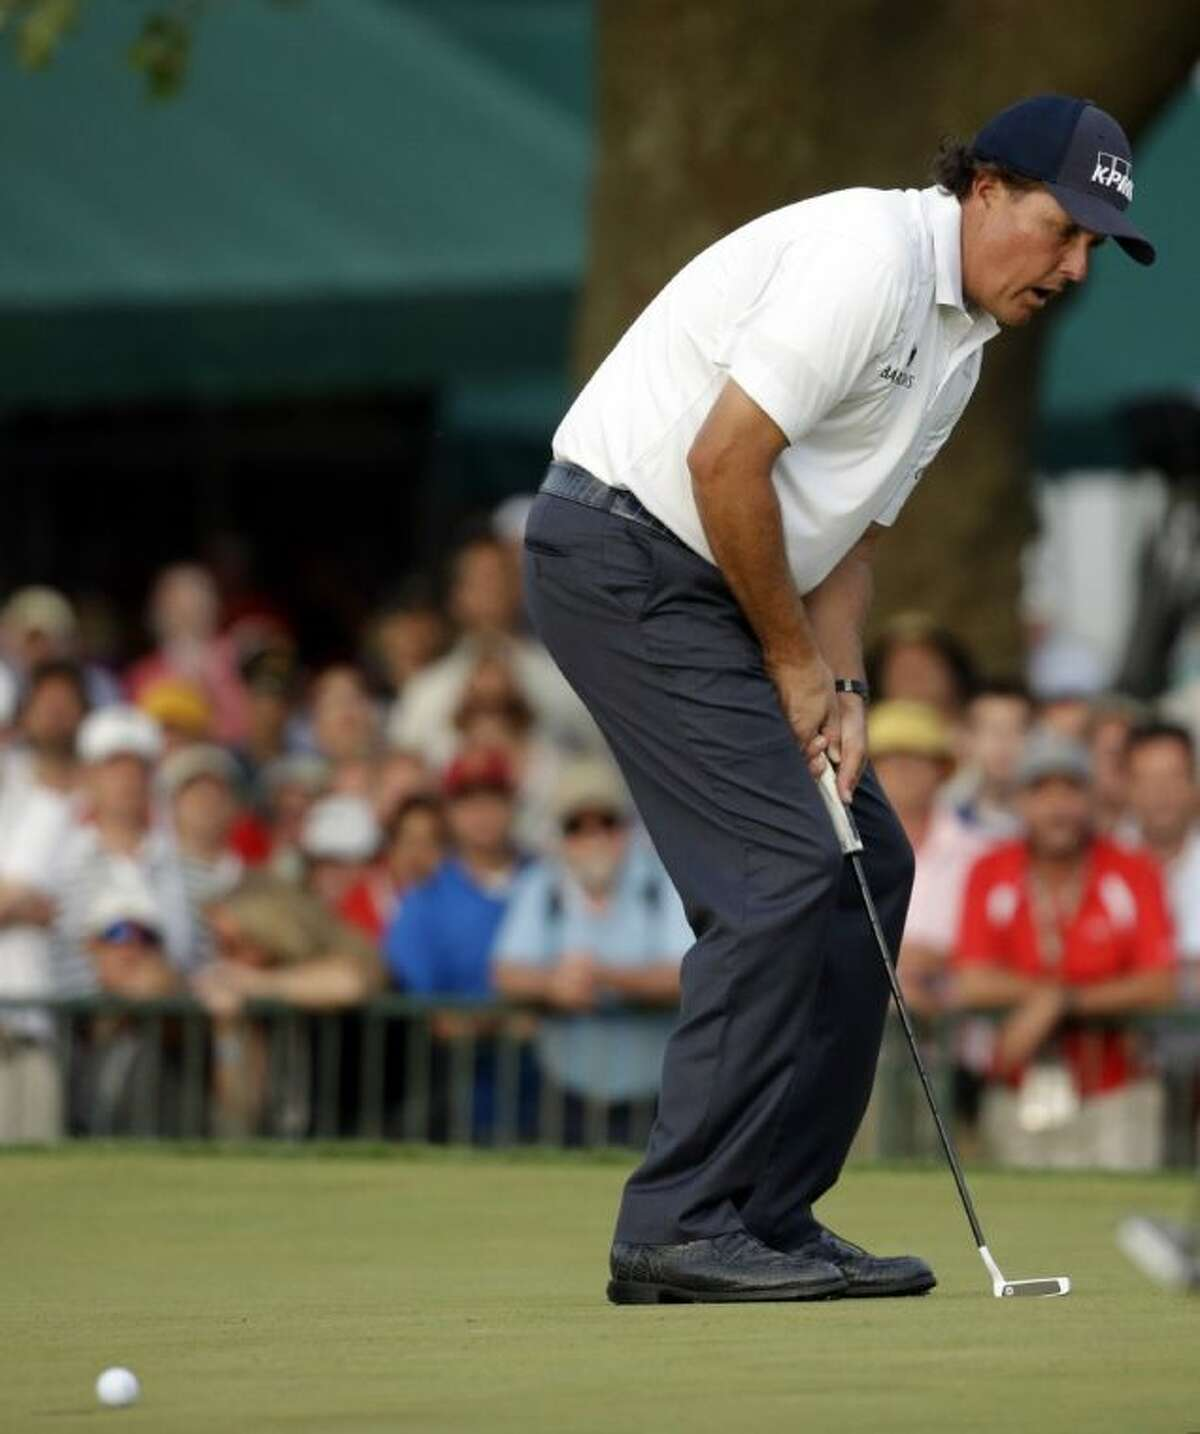 Phil Mickelson reacts after missing a putt on the 18th hole during the third round of the U.S. Open. Mickelson leads the tournament by one shot.